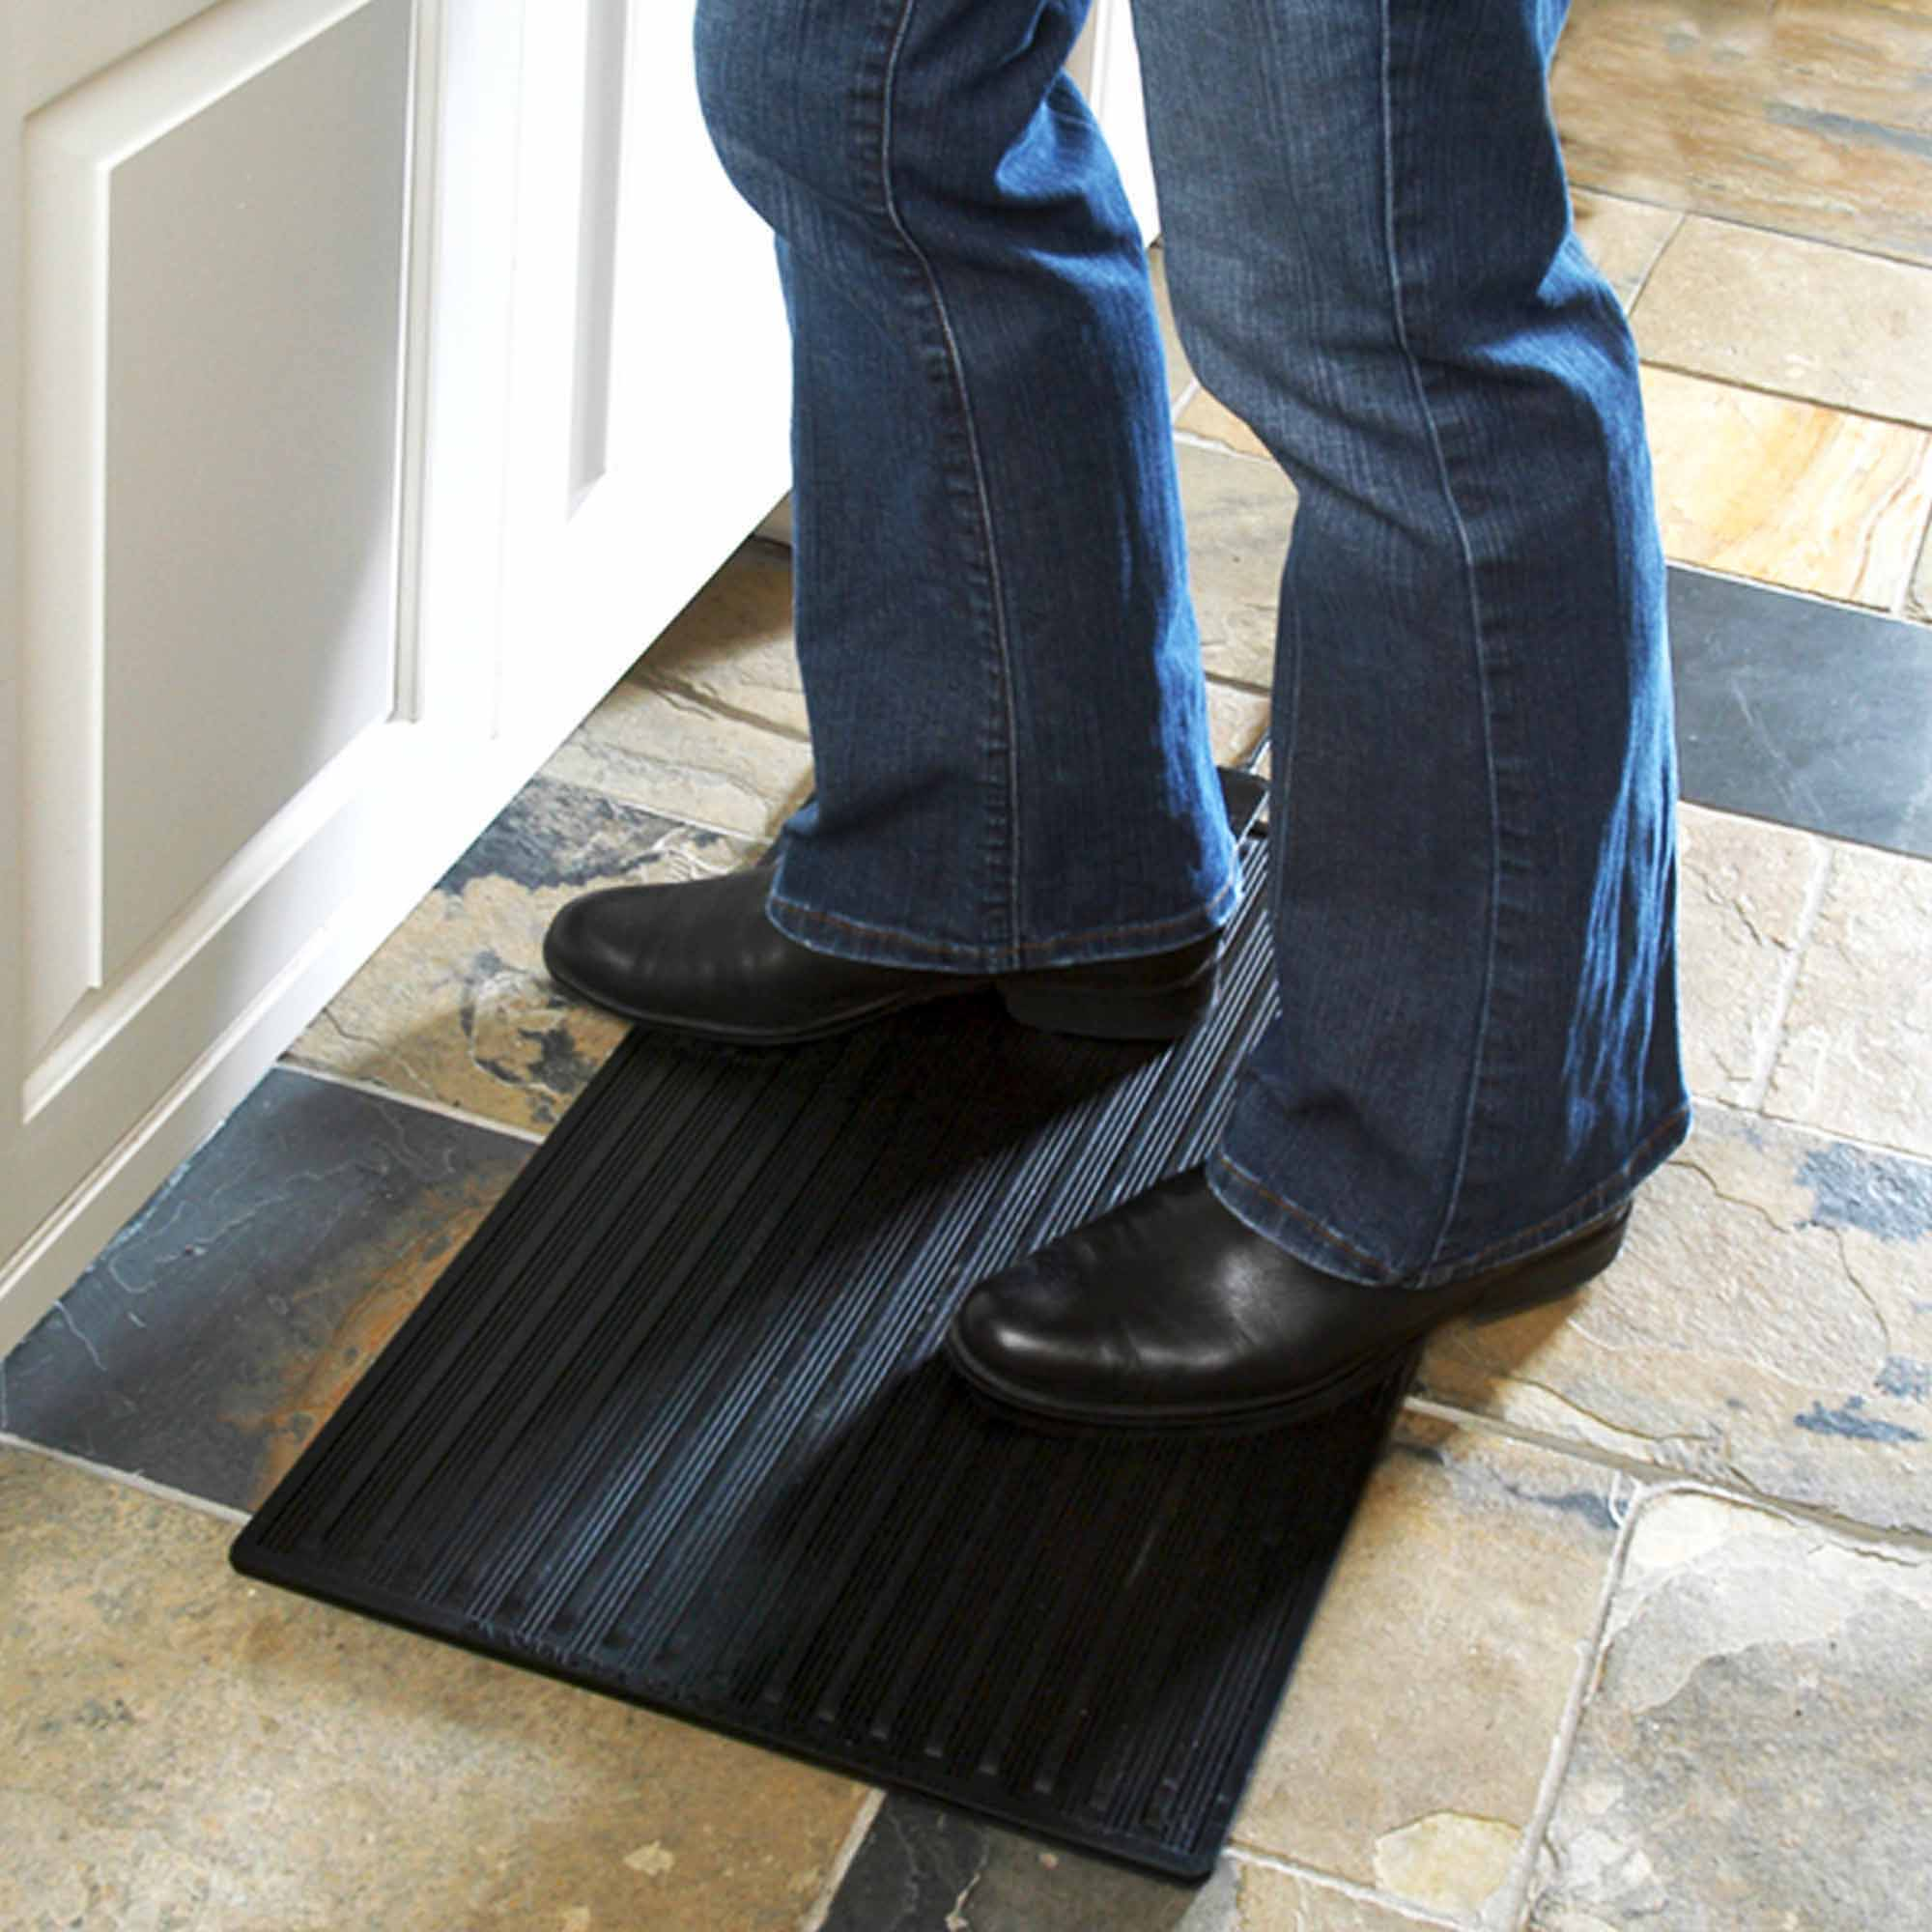 Foot Warmer Rubber Floor Mat Heater Walmart